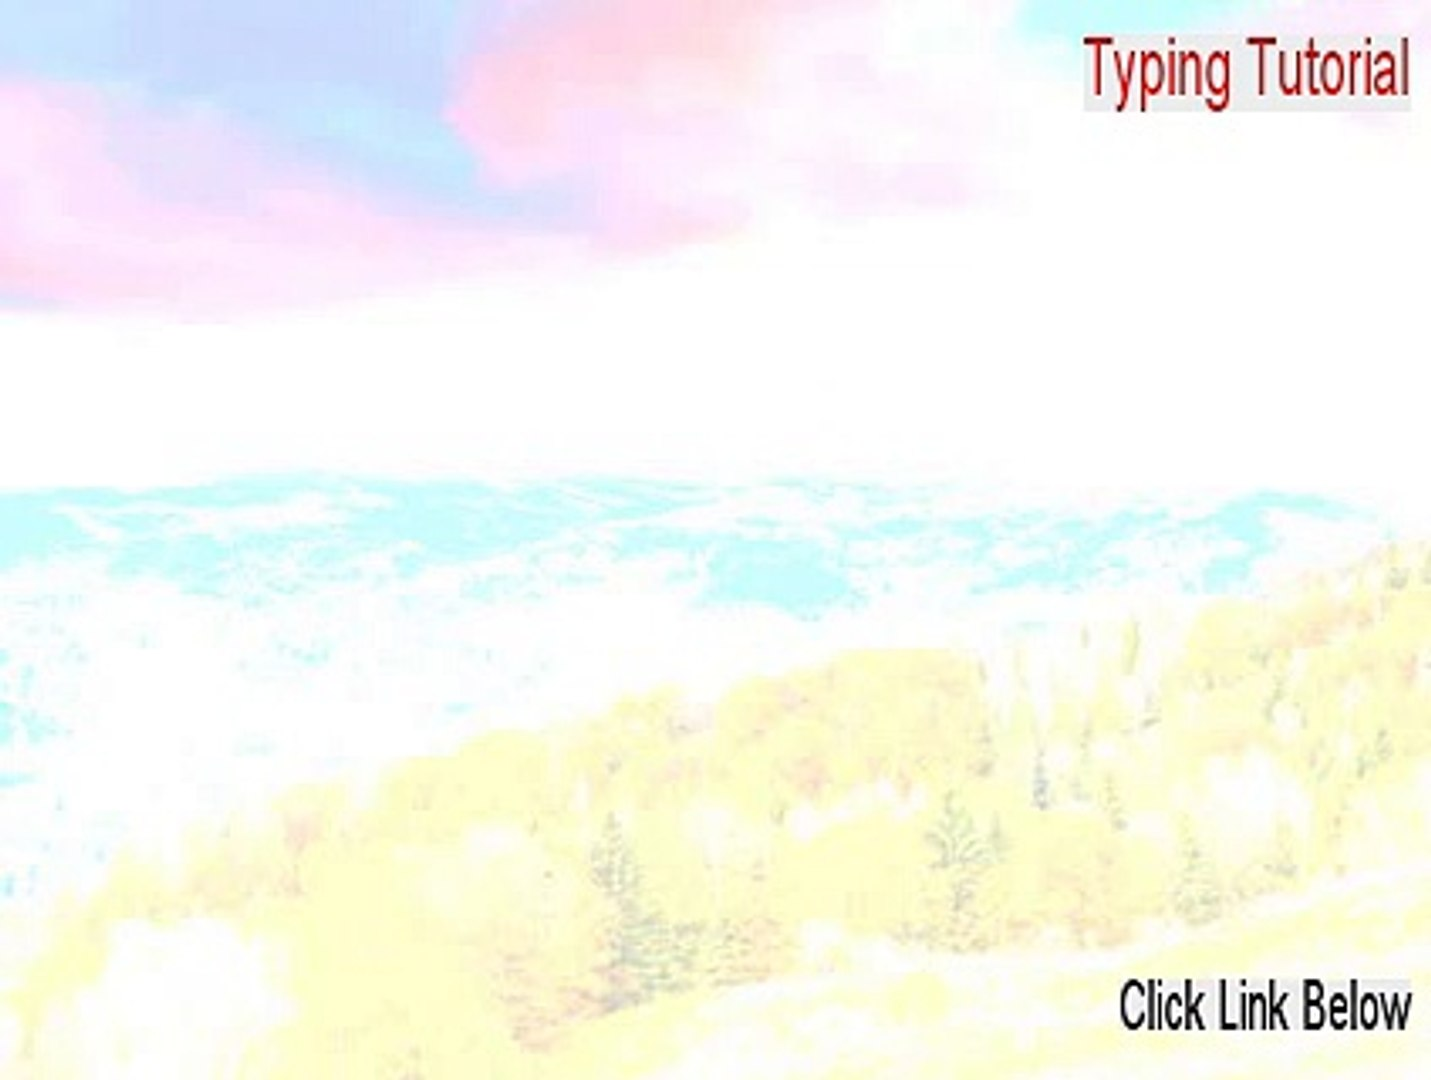 Typing Tutorial Full Download - Download Now